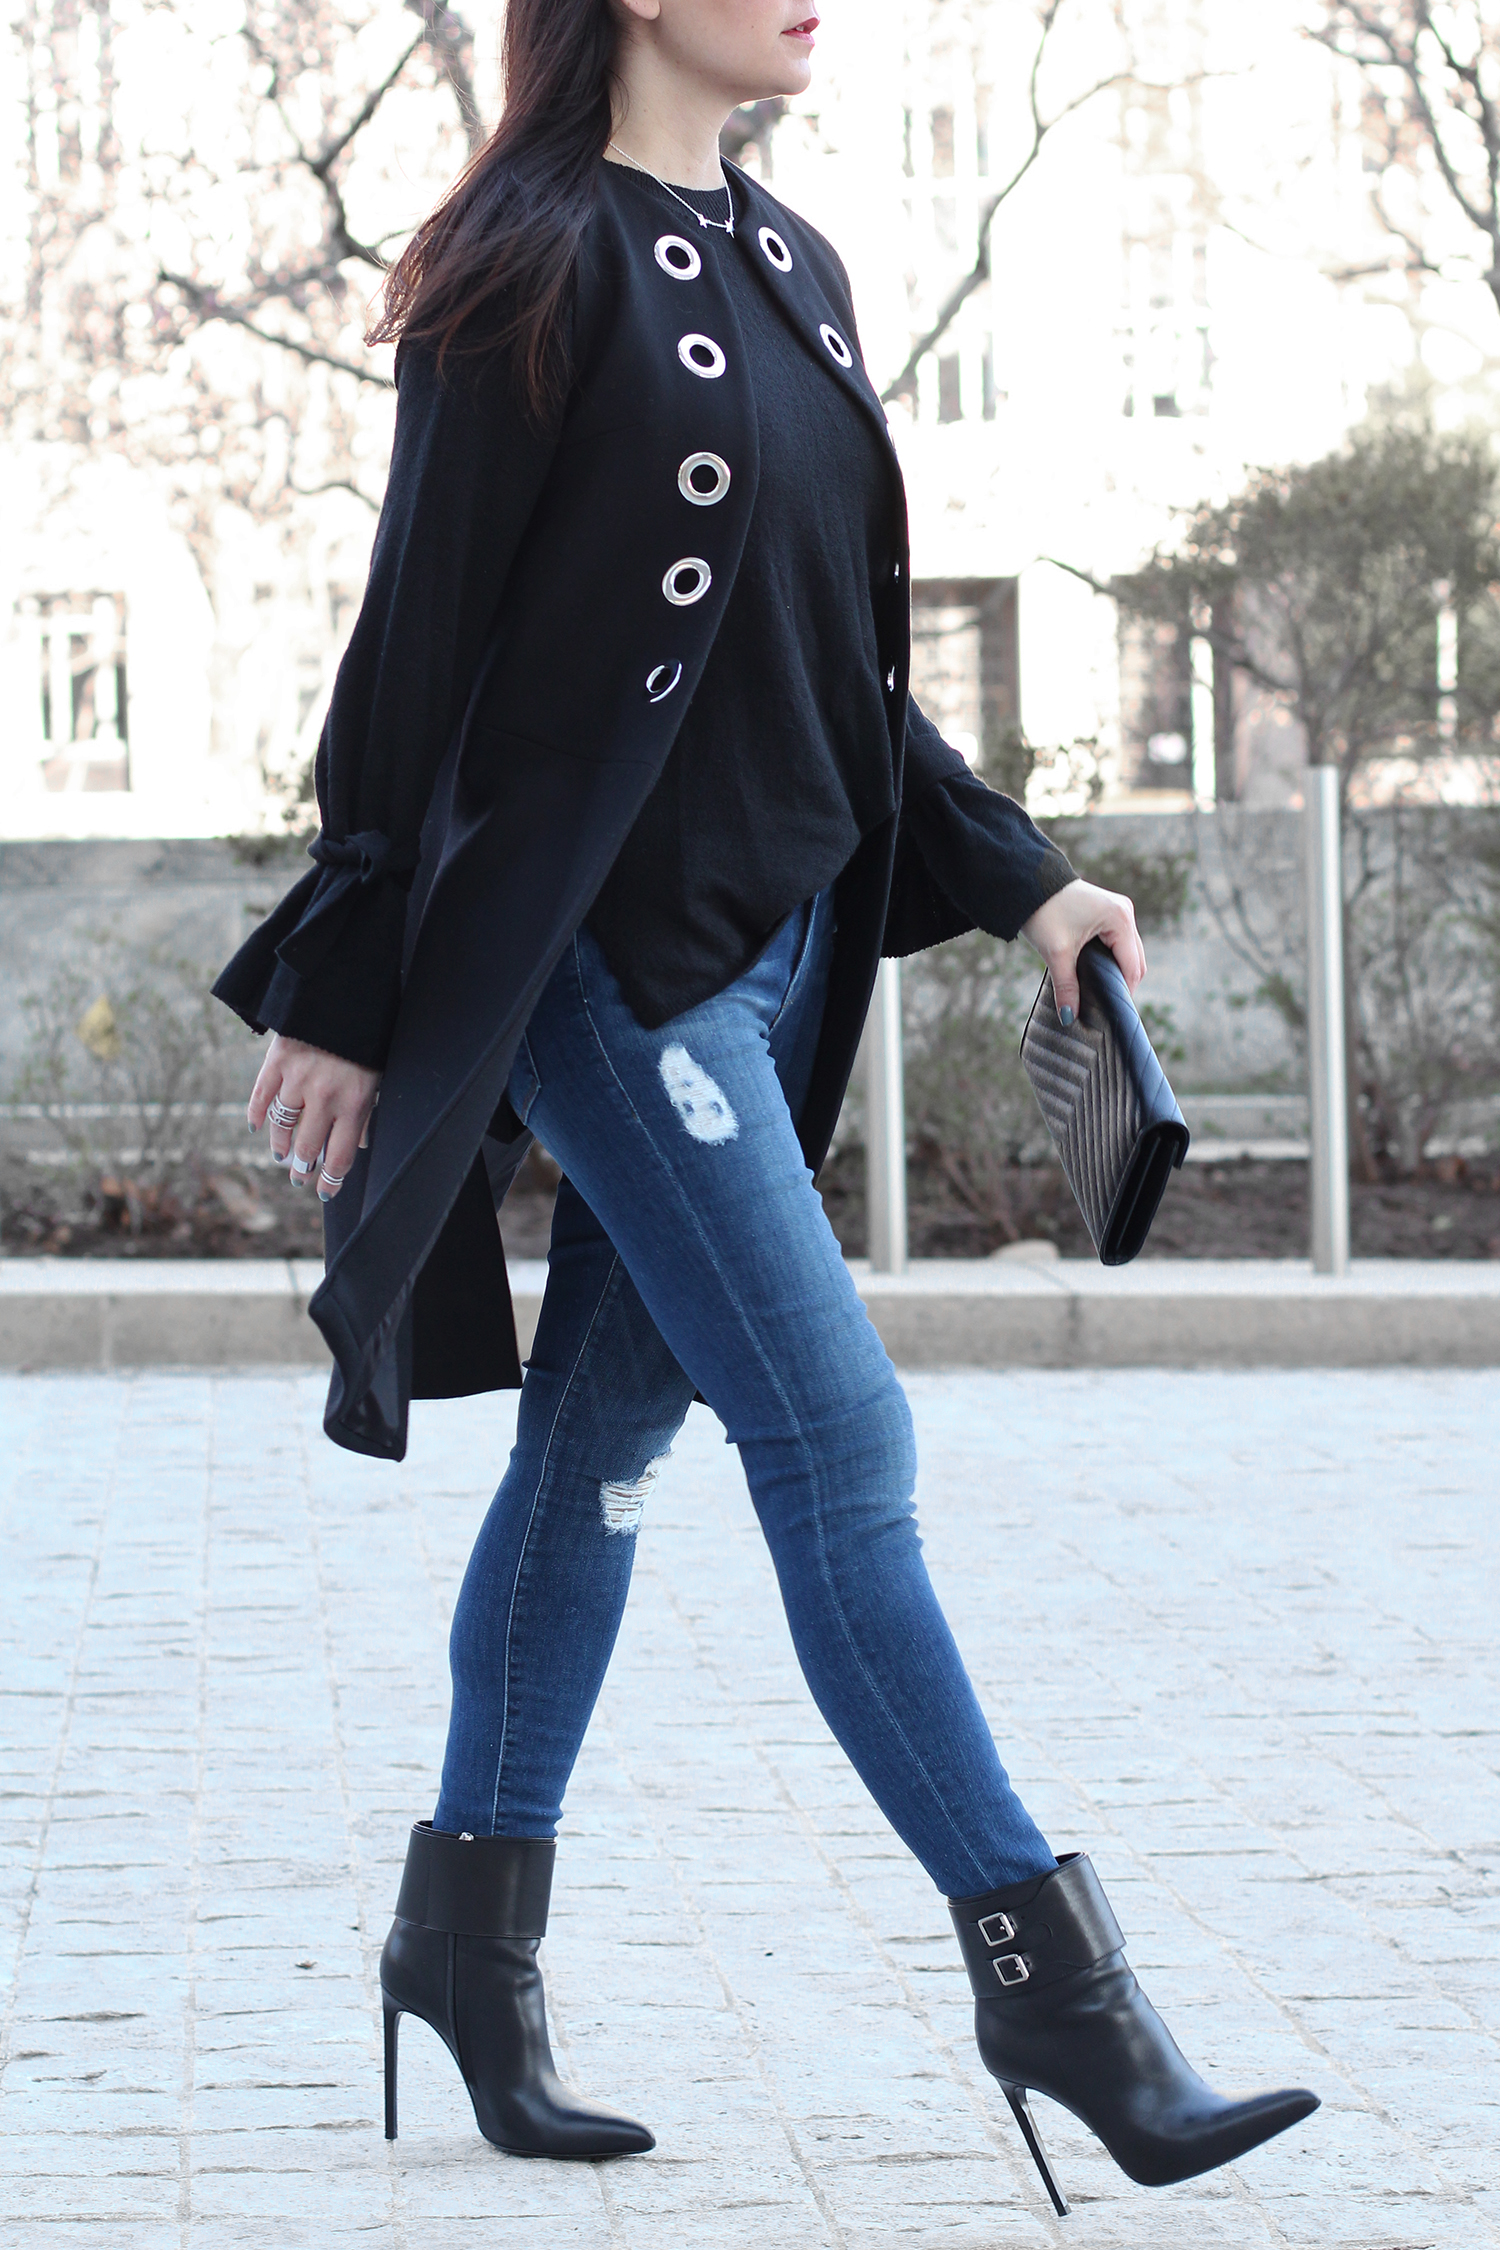 Bow Sleeve Sweater, Distressed Jeans Outfit